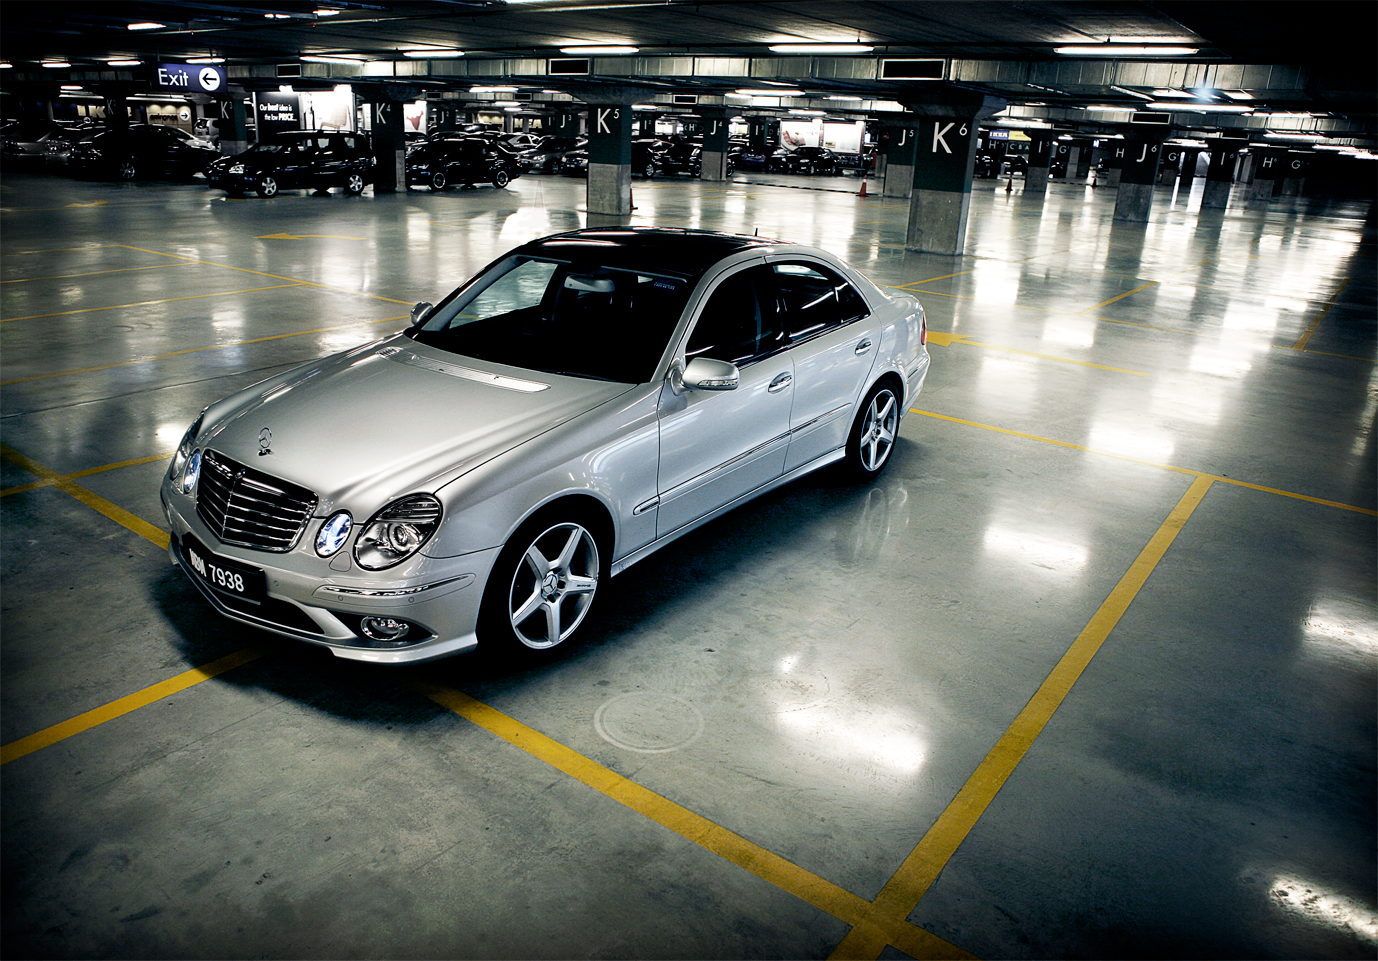 Review mercedes benz e280 amg sports package image 154915 for 2007 mercedes benz e350 recalls